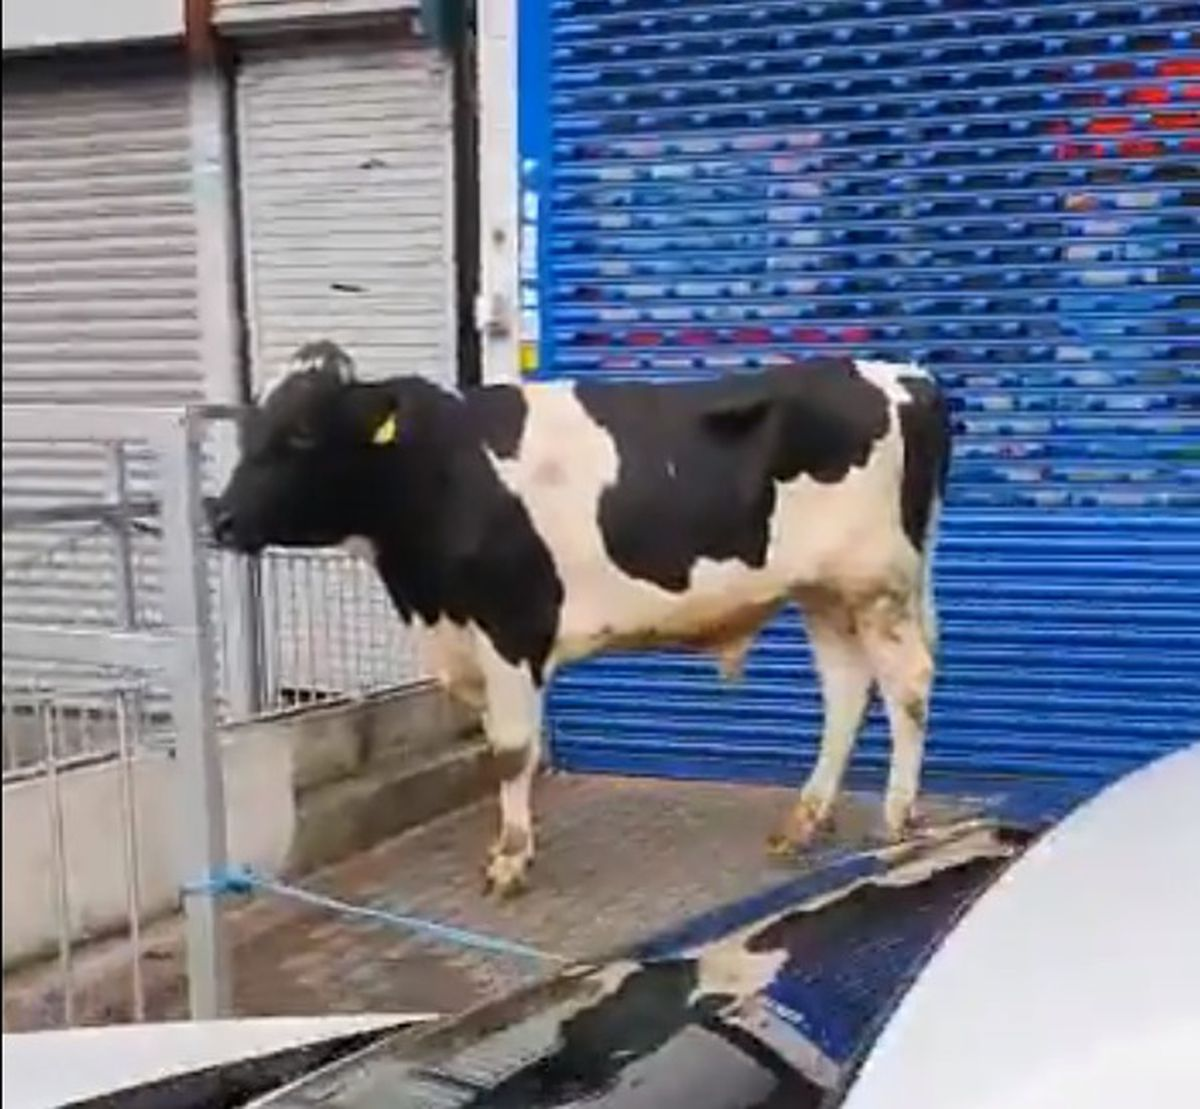 The bull on Stratford Road in Birmingham. Video still from video by @ResponseWMP